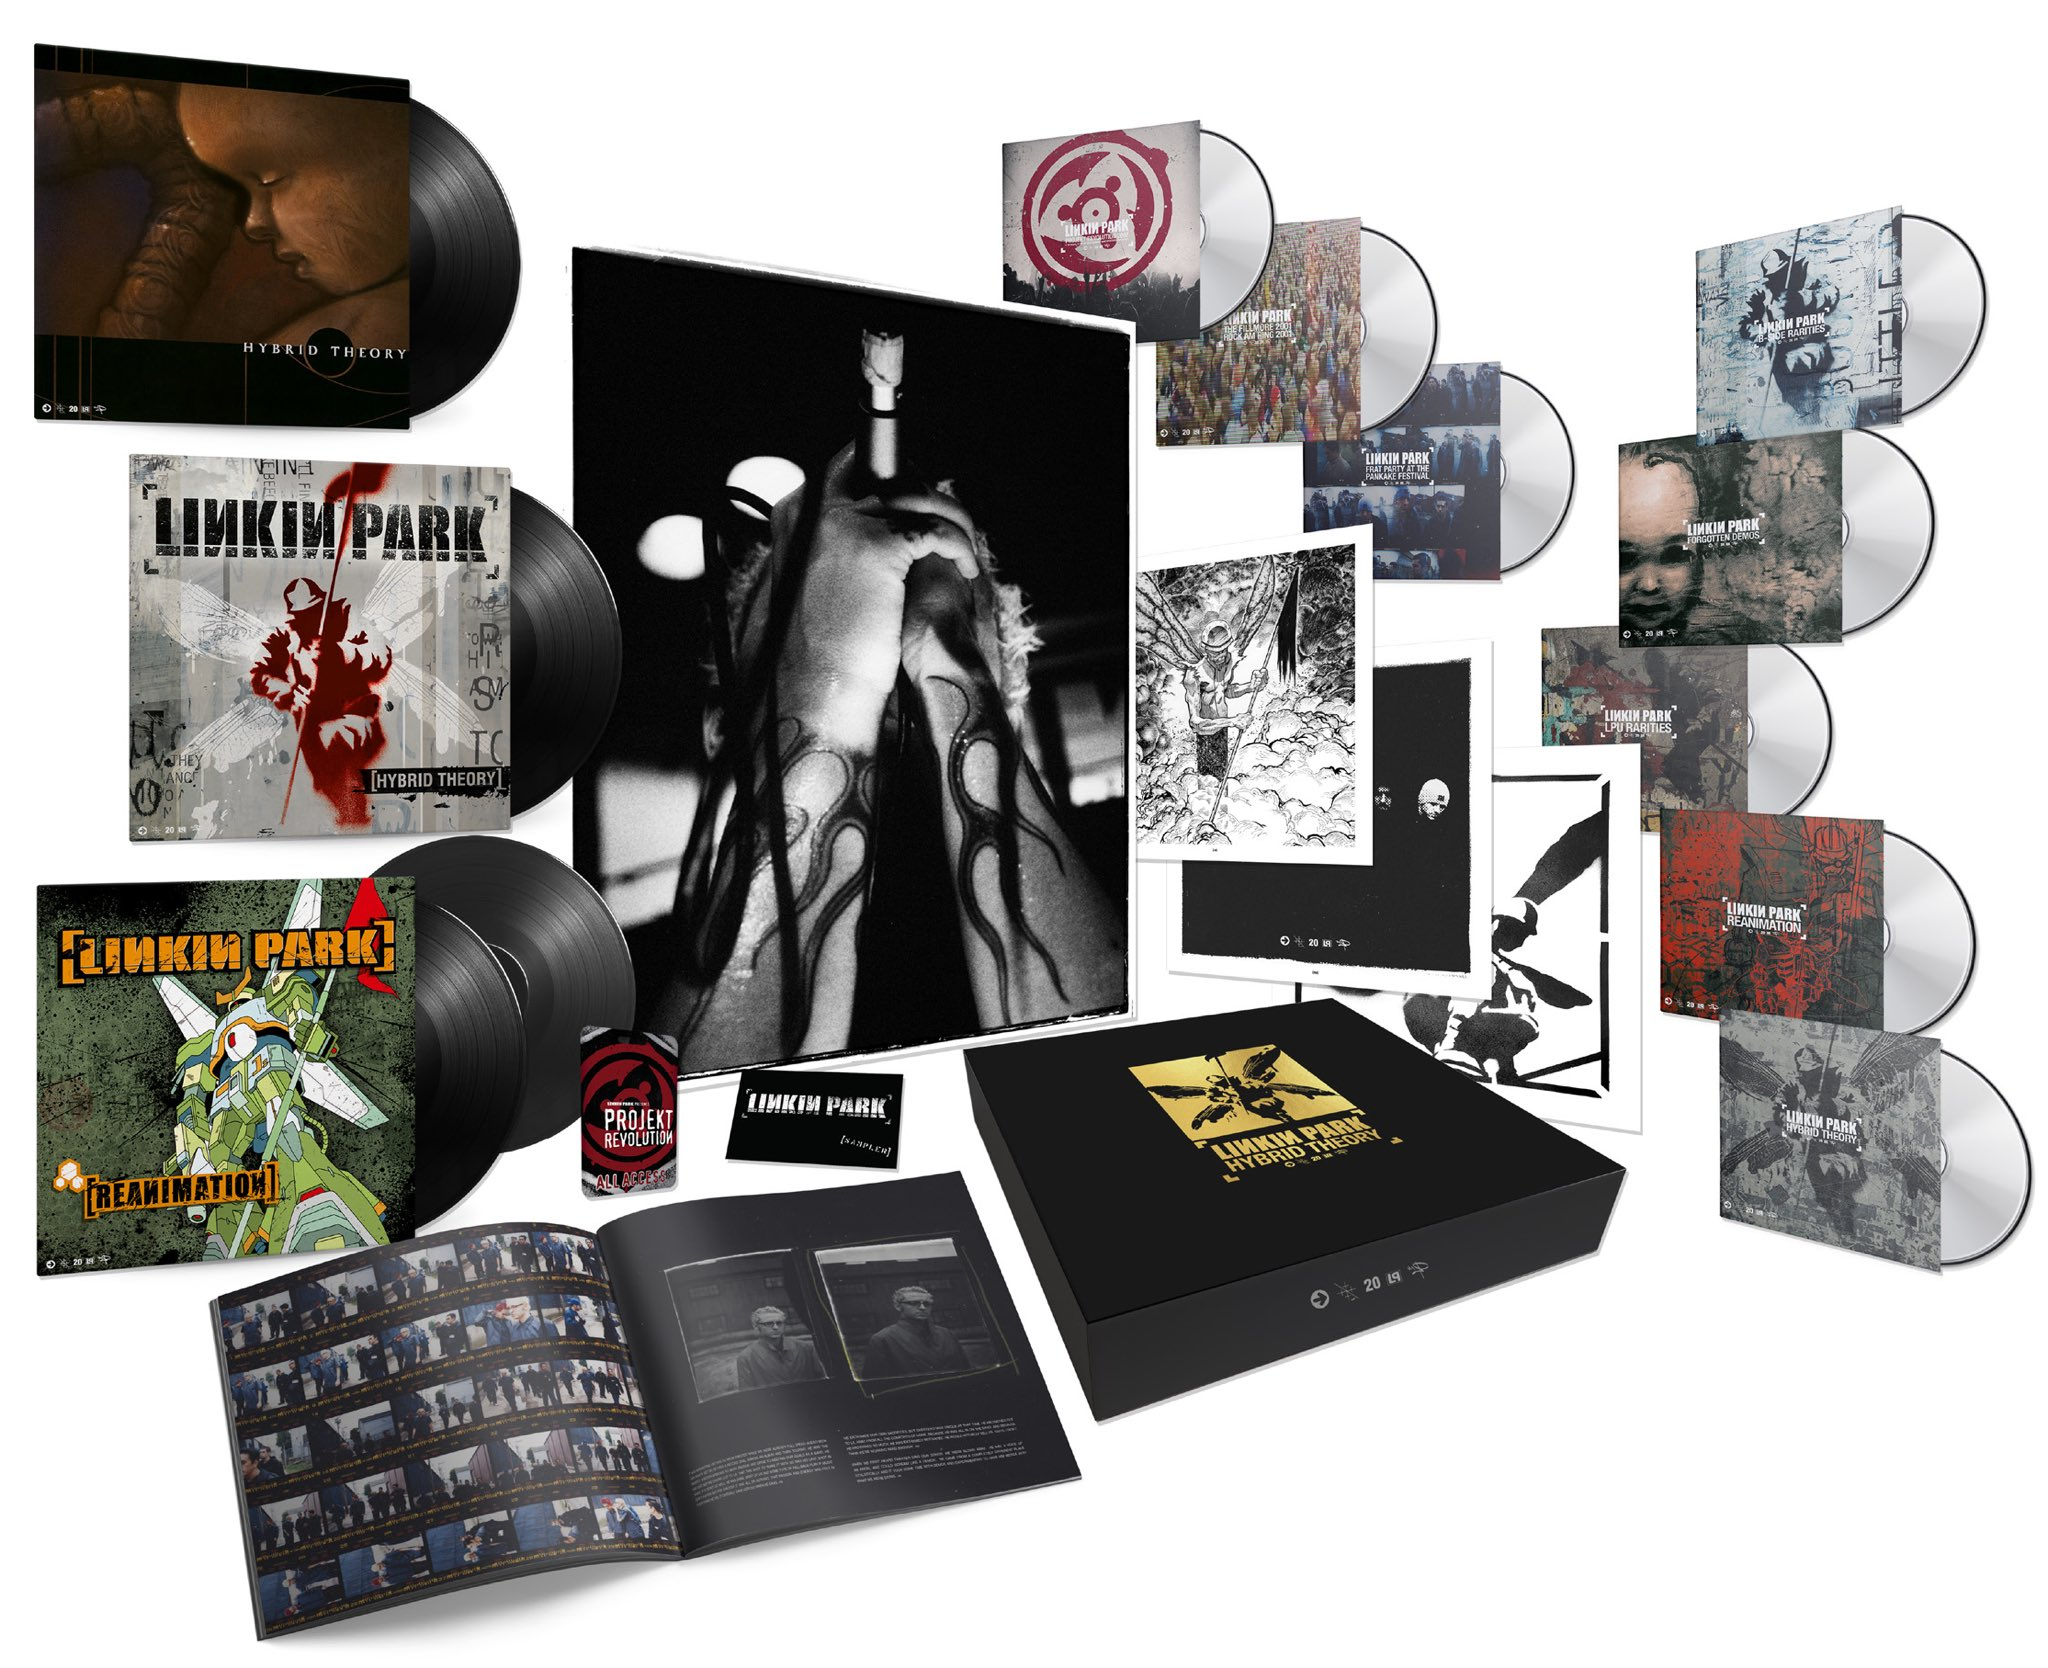 """LINKIN PARK on Twitter: """"In celebration of Hybrid Theory's 20th  Anniversary, we're releasing a limited edition super deluxe box set that  includes unreleased demos, 90+ minutes of never before seen live and"""